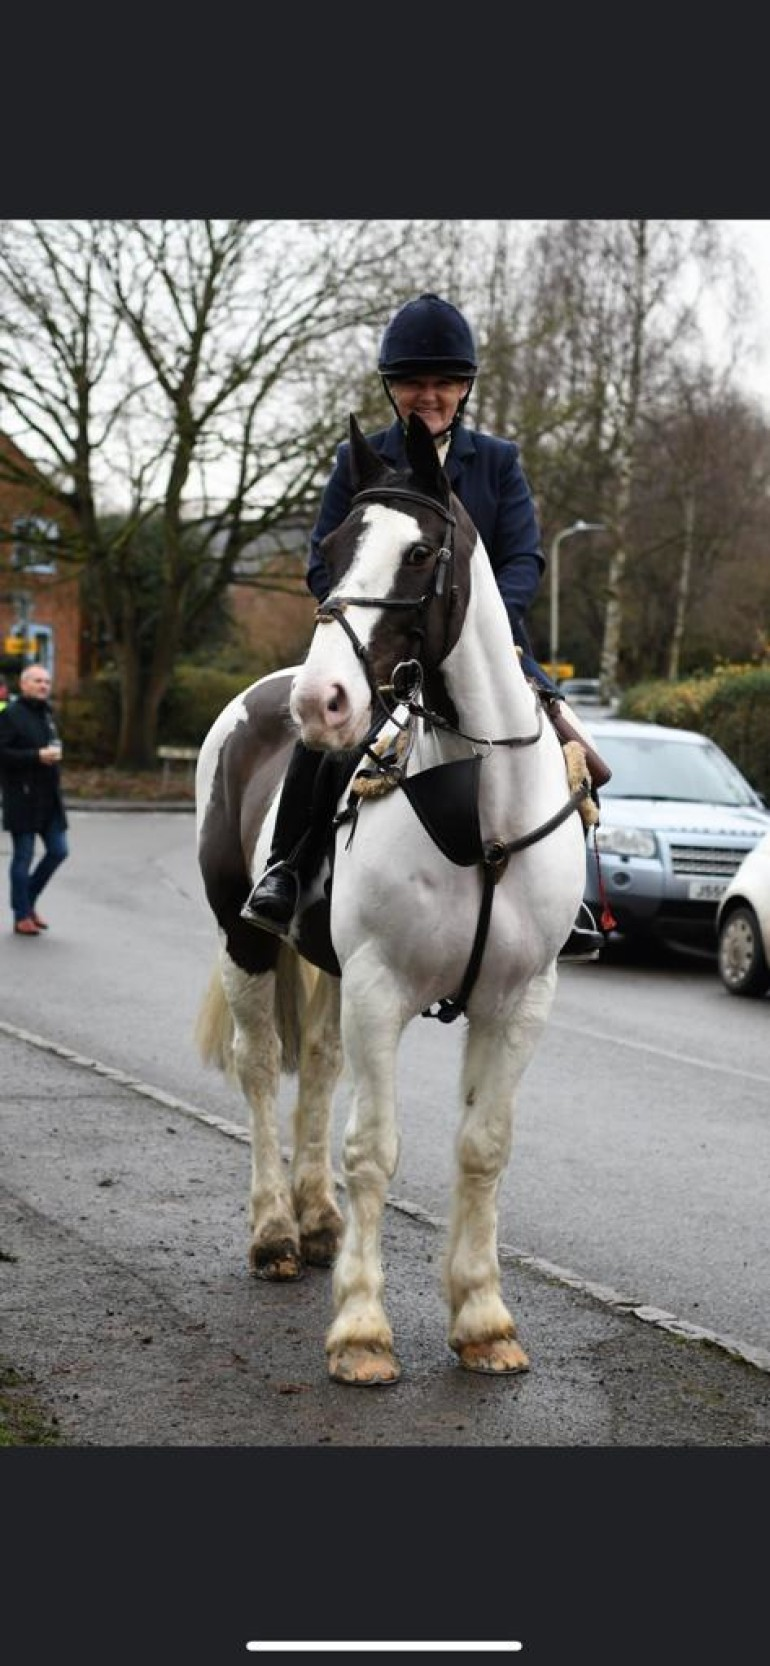 Super hunting cob!